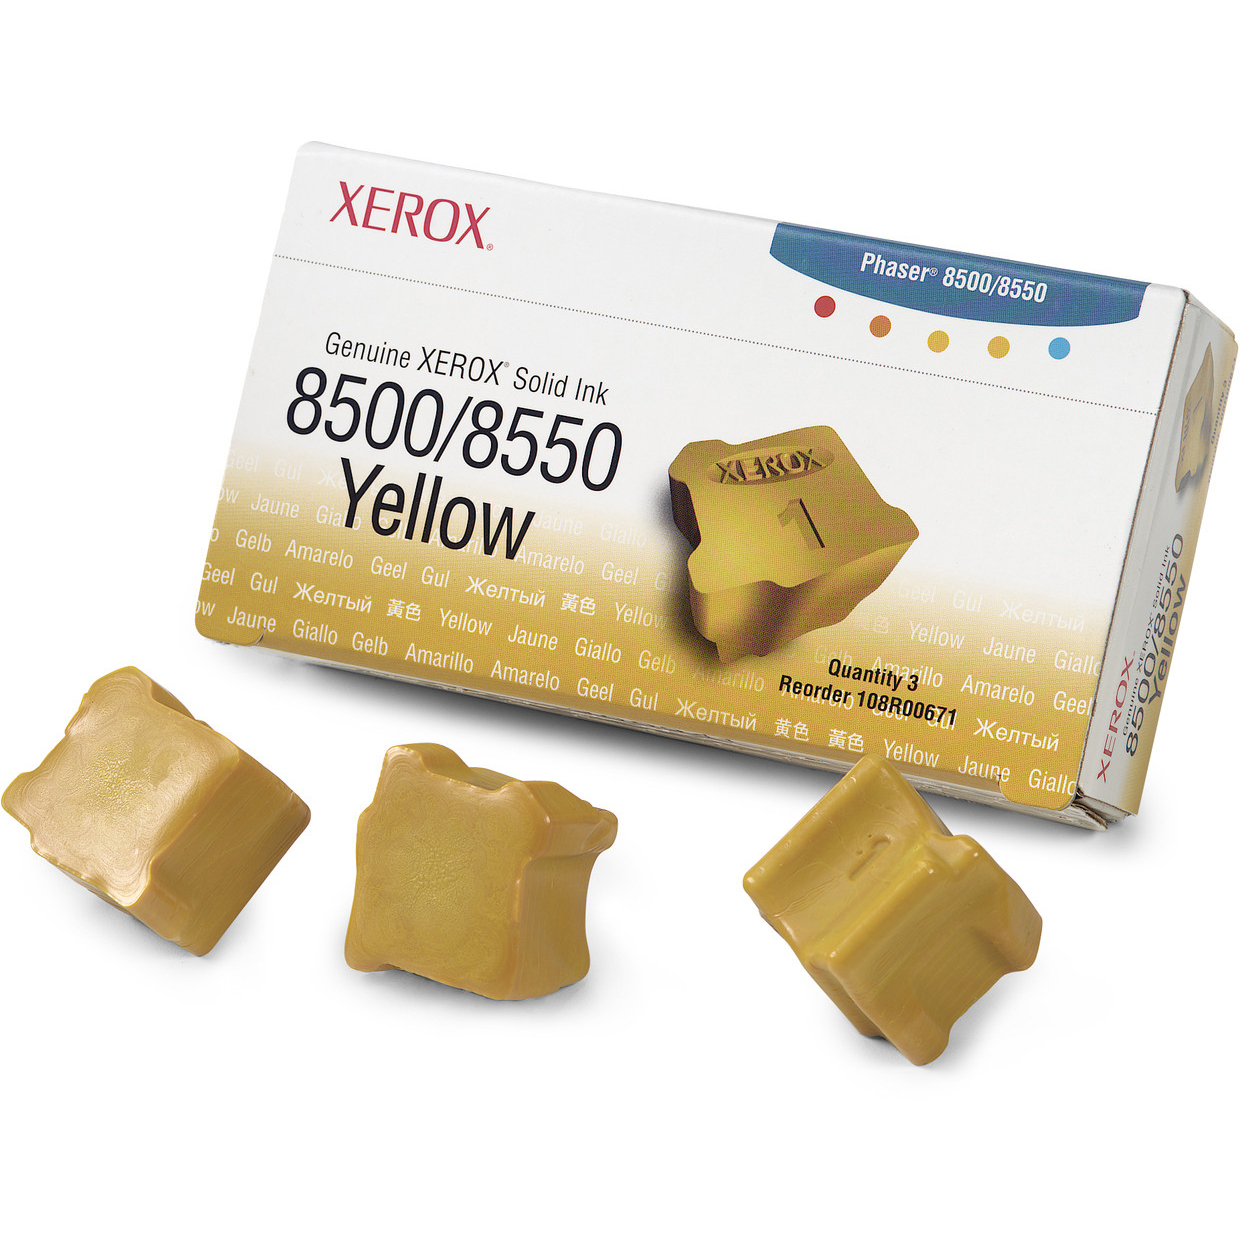 Original Xerox 108R00671 Yellow Triple Pack Solid Ink (108R00671)